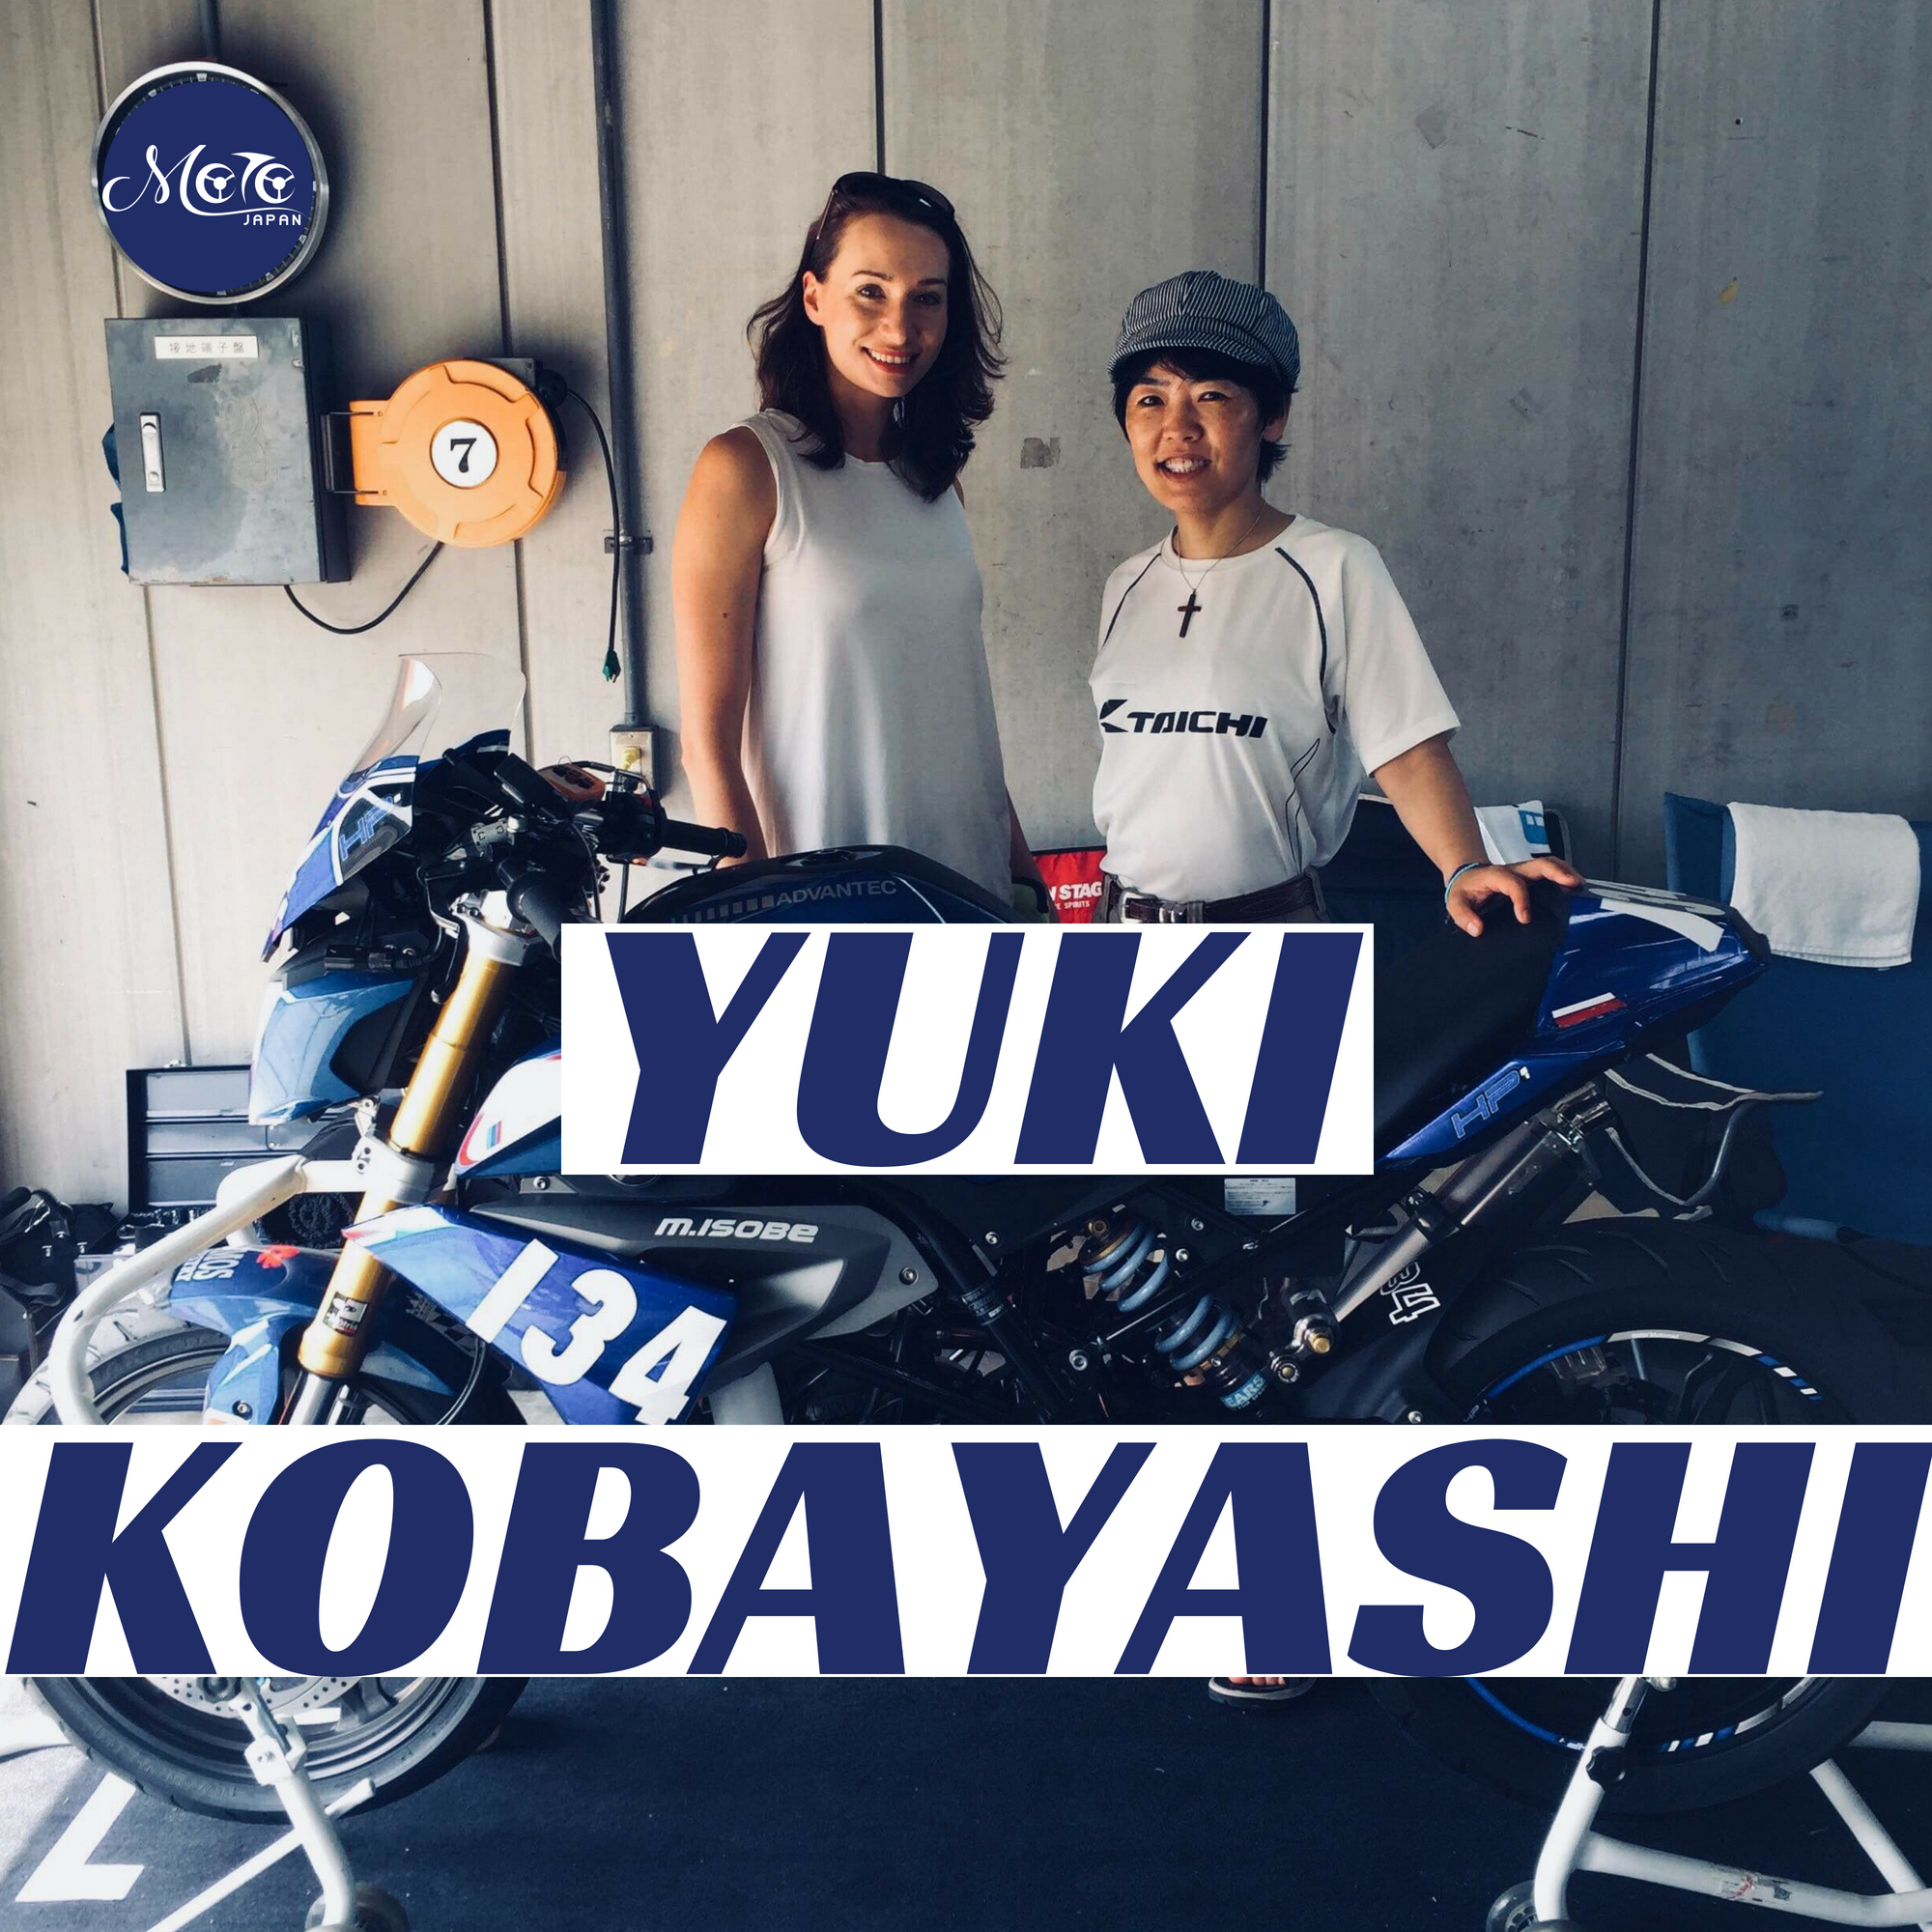 Yuki Kobayashi Motorcycle Journalist Japan